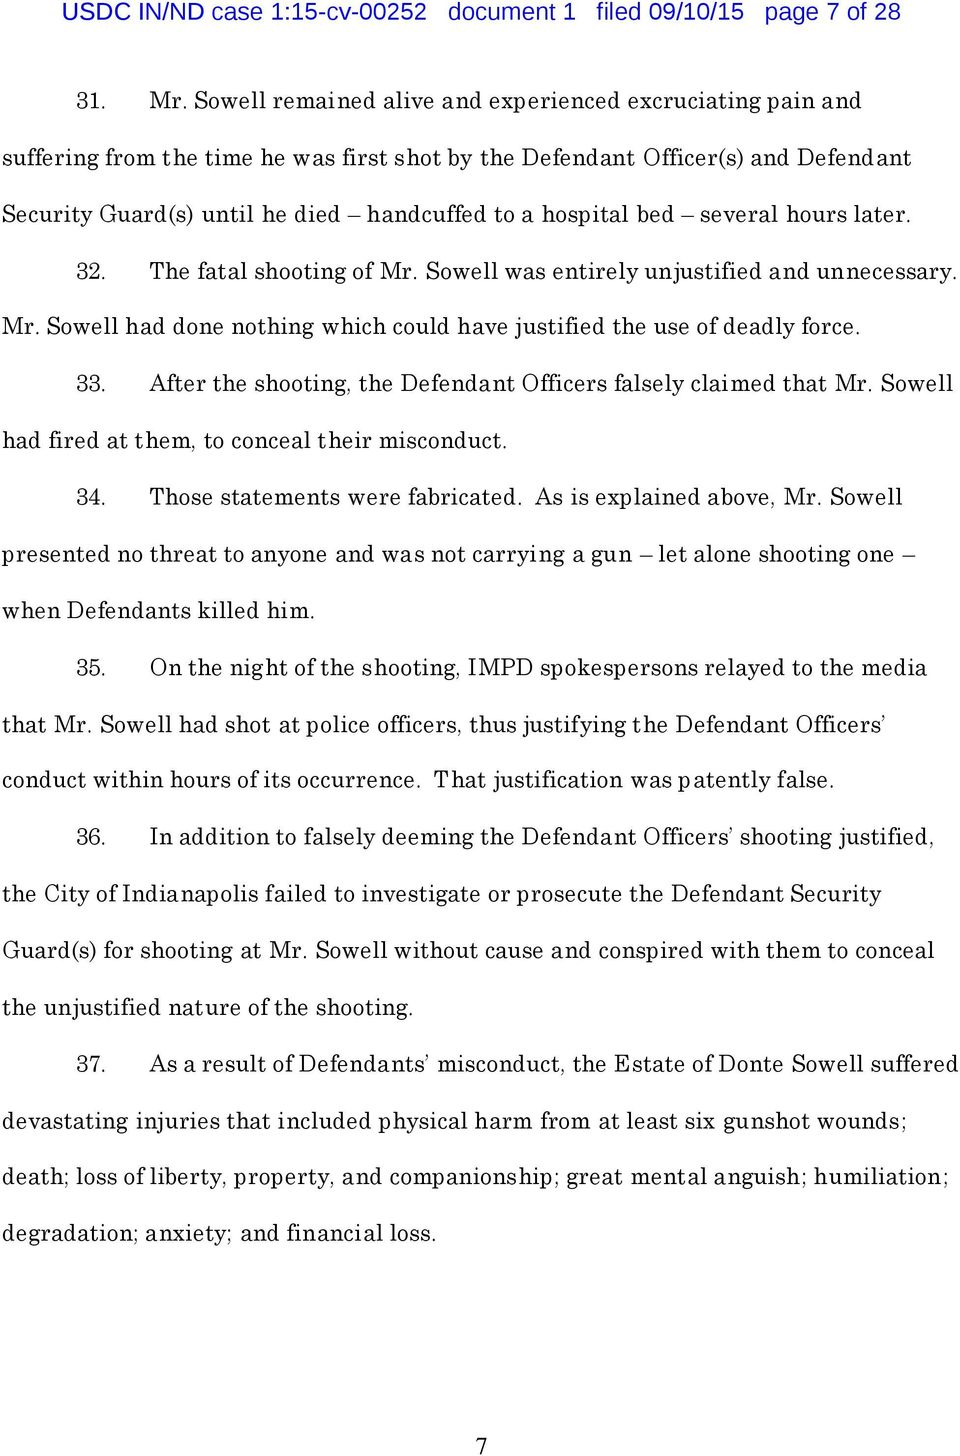 bed several hours later. 32. The fatal shooting of Mr. Sowell was entirely unjustified and unnecessary. Mr. Sowell had done nothing which could have justified the use of deadly force. 33.